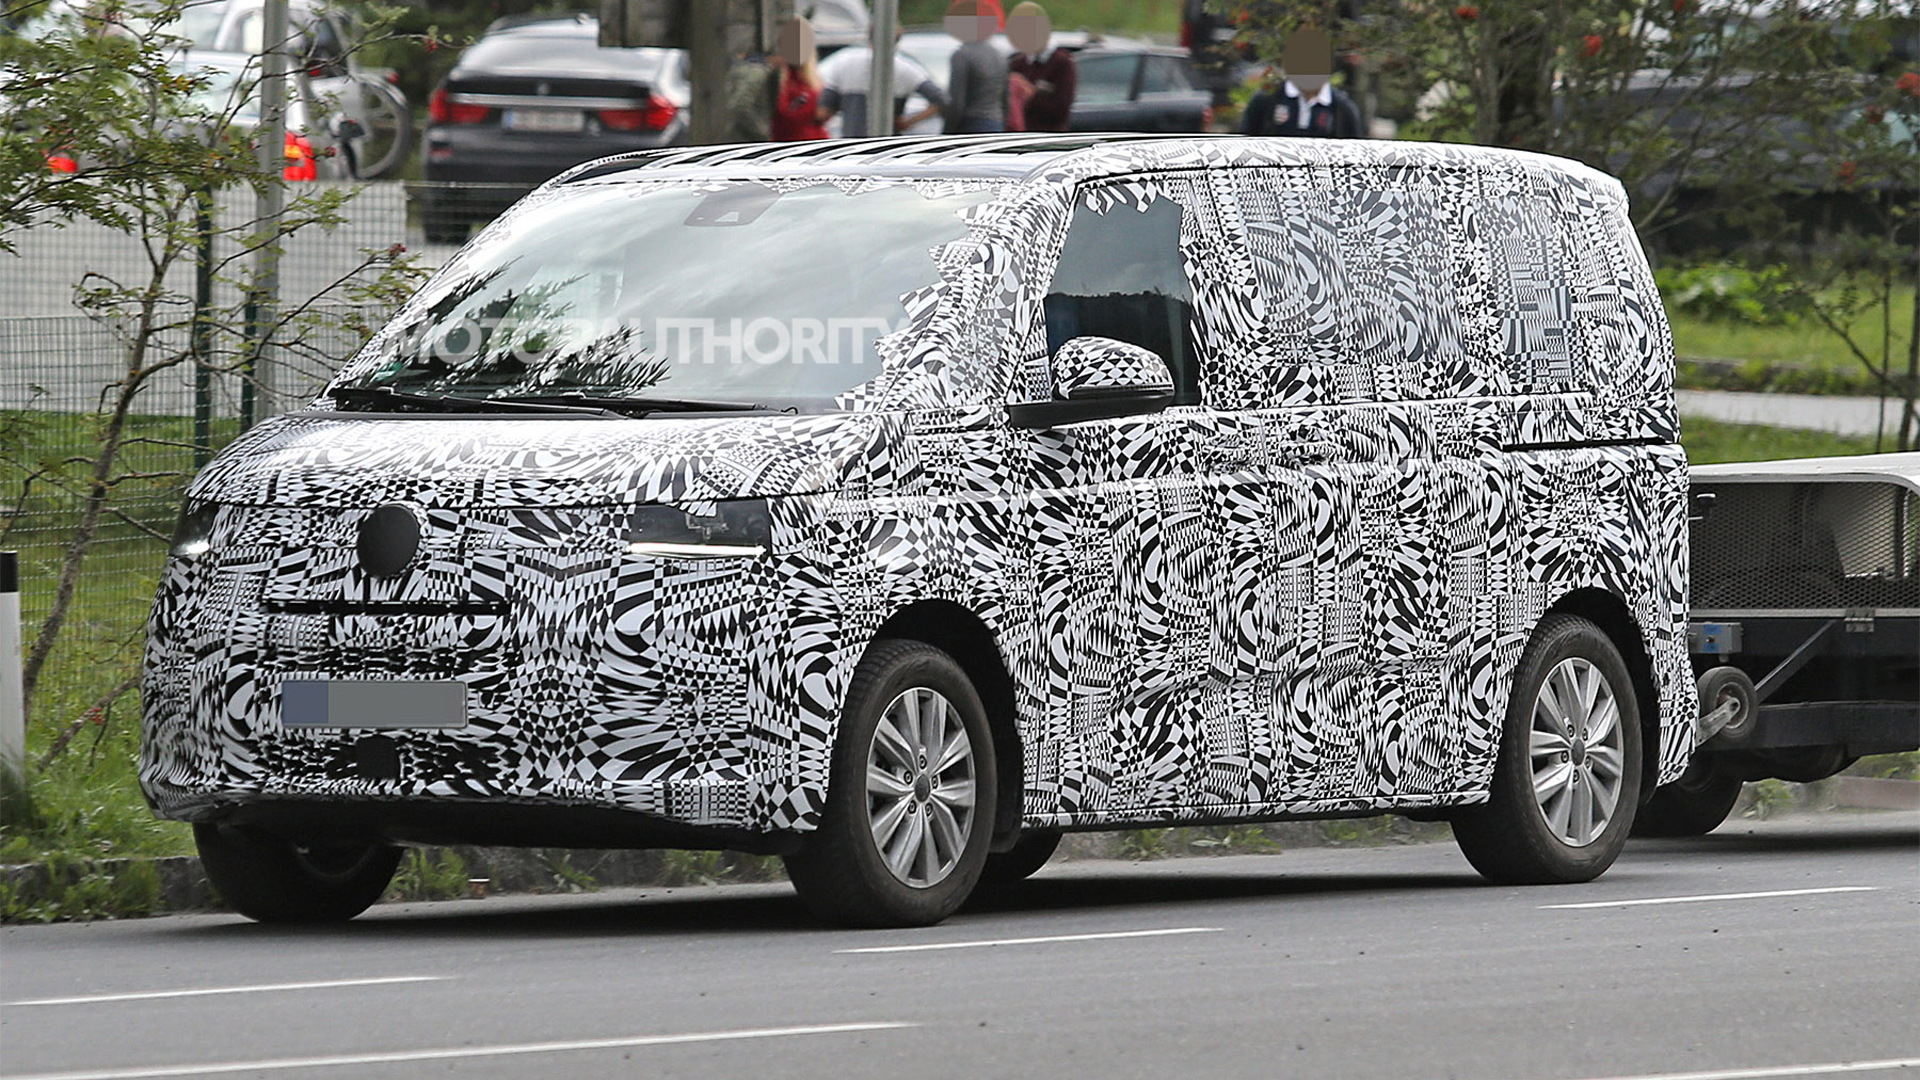 2021 Volkswagen Transporter (T7) spy shots - Photo credit: S. Baldauf/SB-Medien